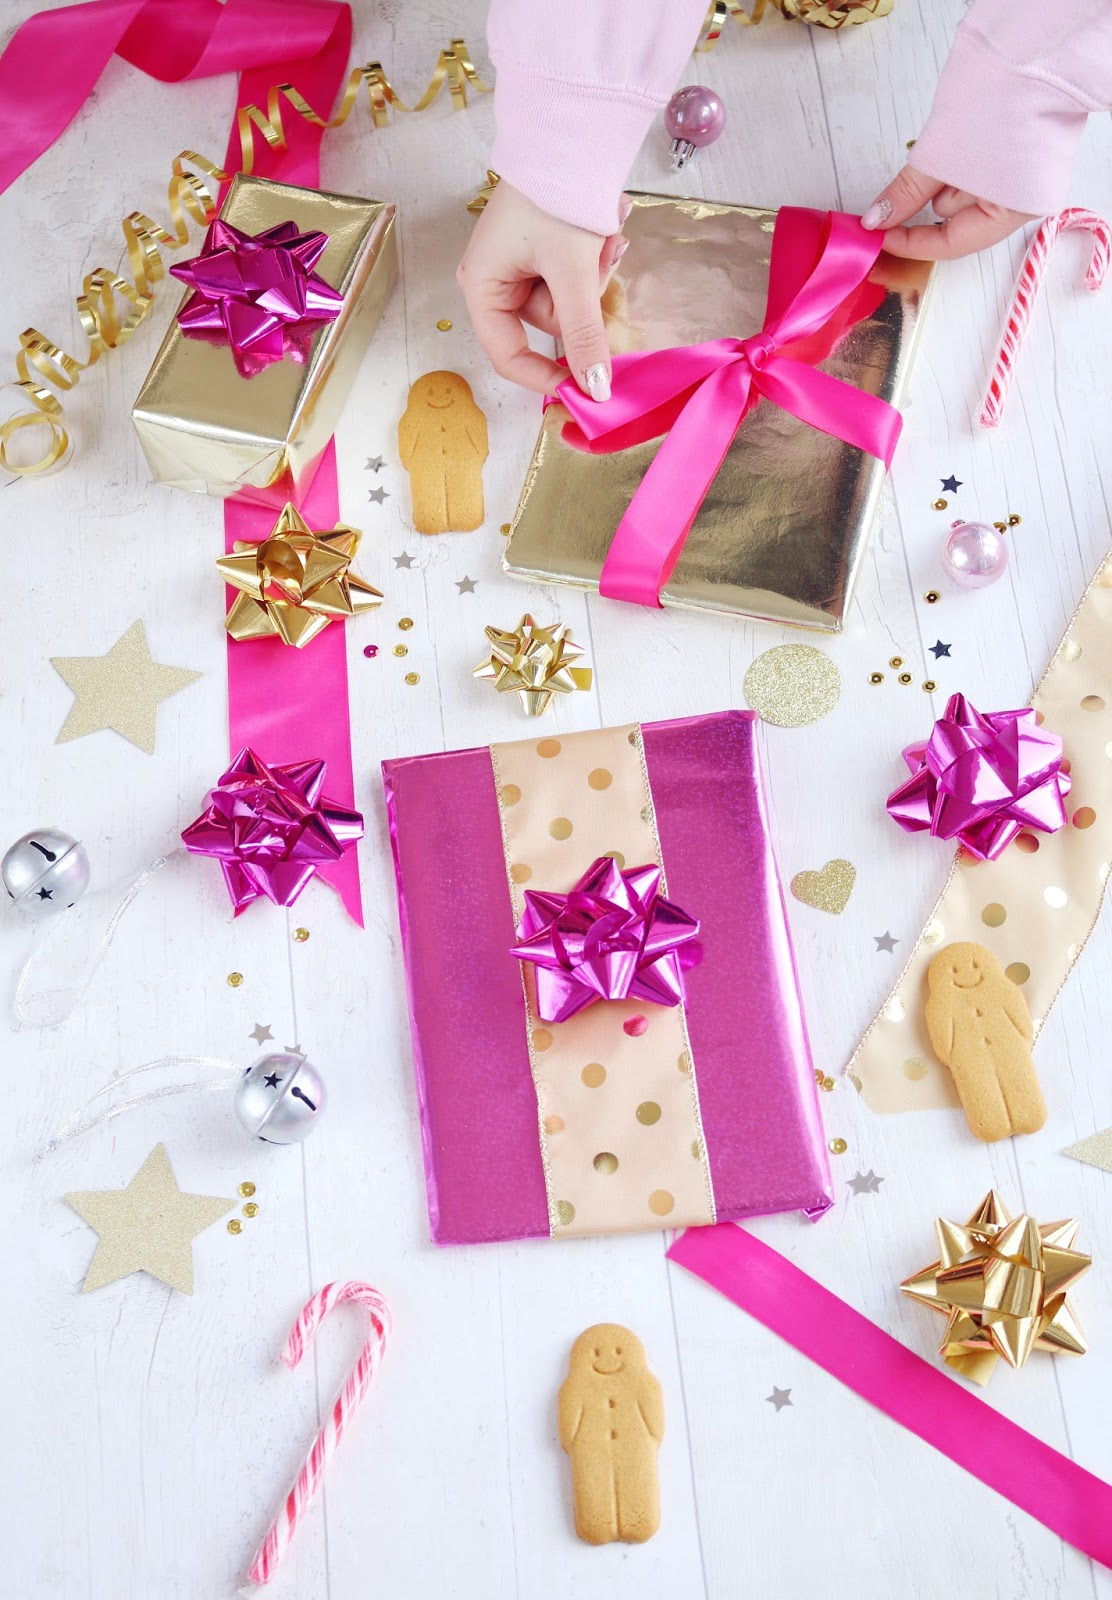 How To Make Presents Look All Pinterest-y When You\'re Skint and Can ...